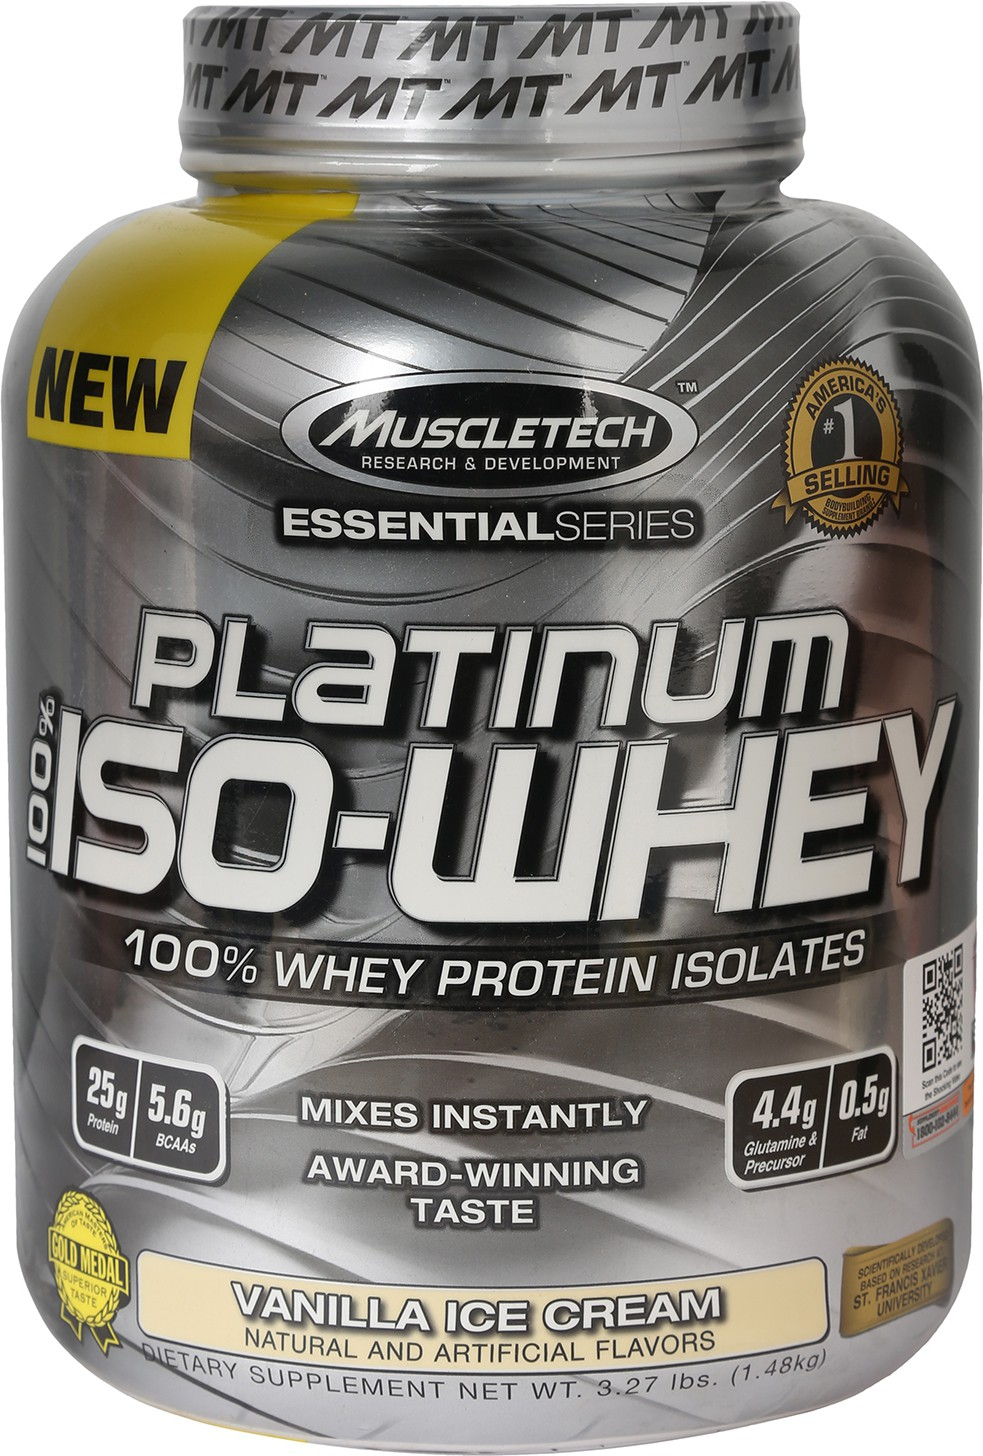 Deals | ON, Muscletech Protein Supplements